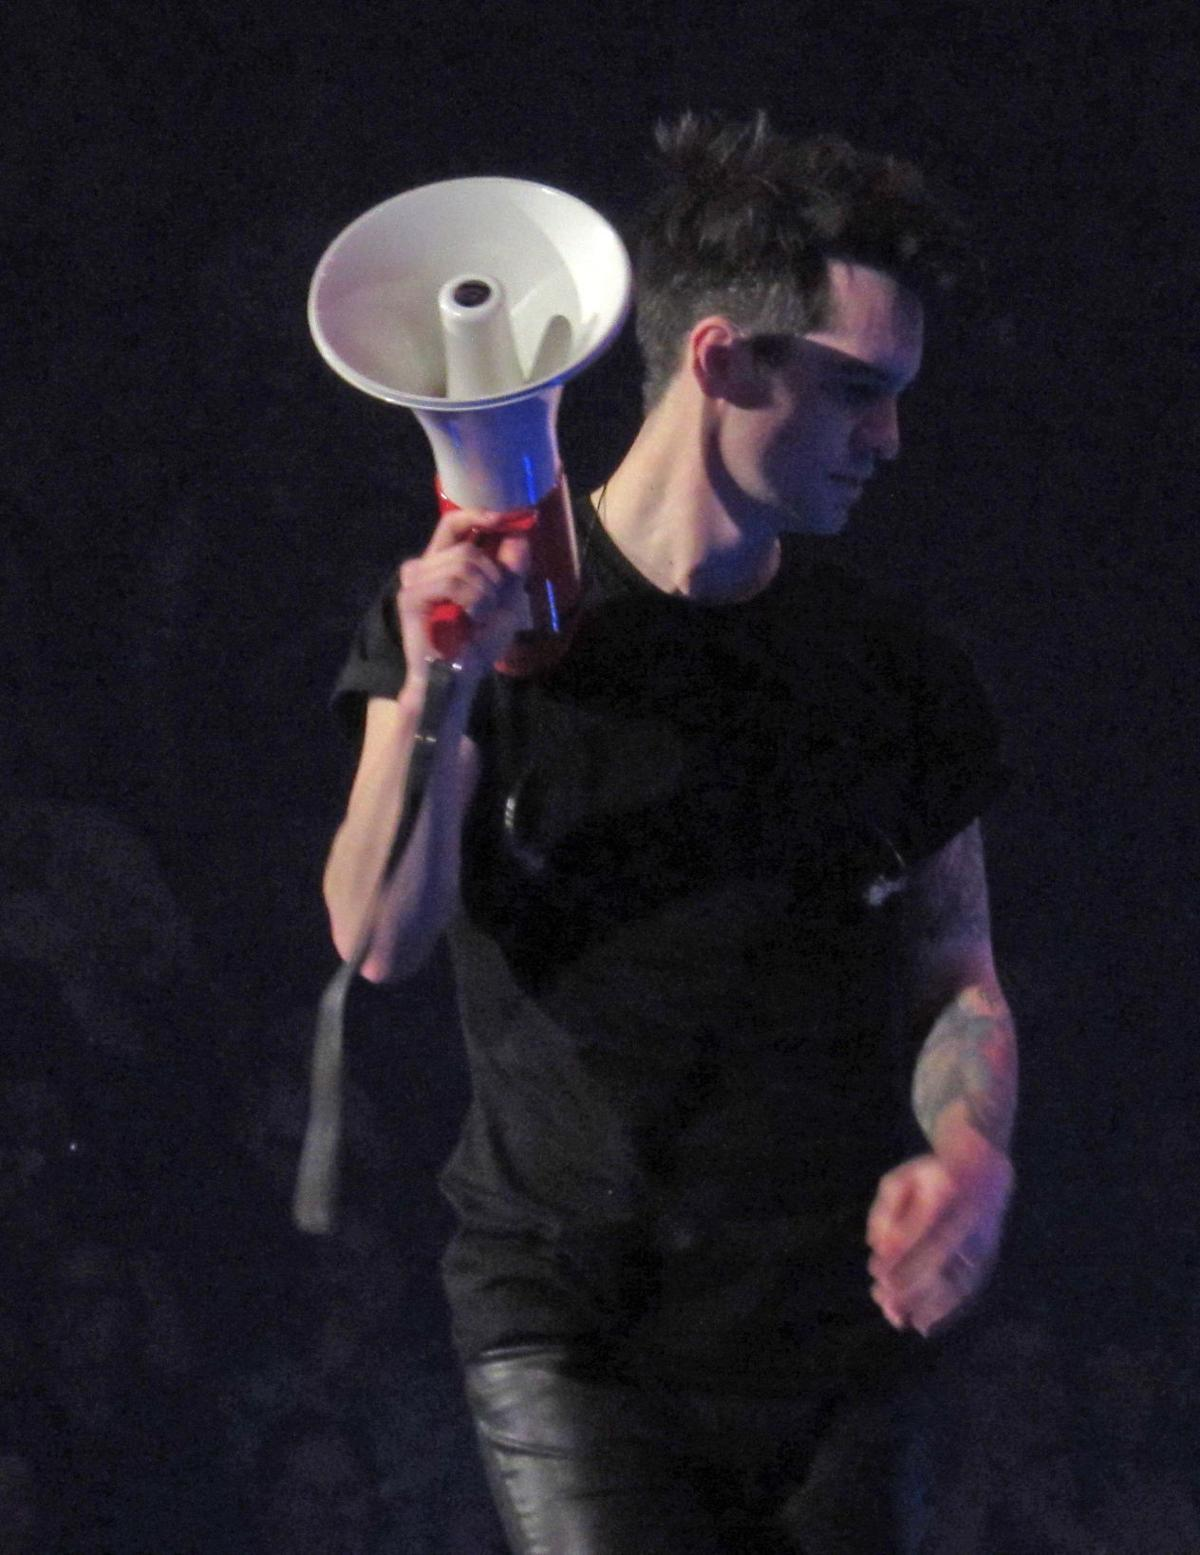 Brendon Urie resorts to bullhorn after sound cuts out at concert